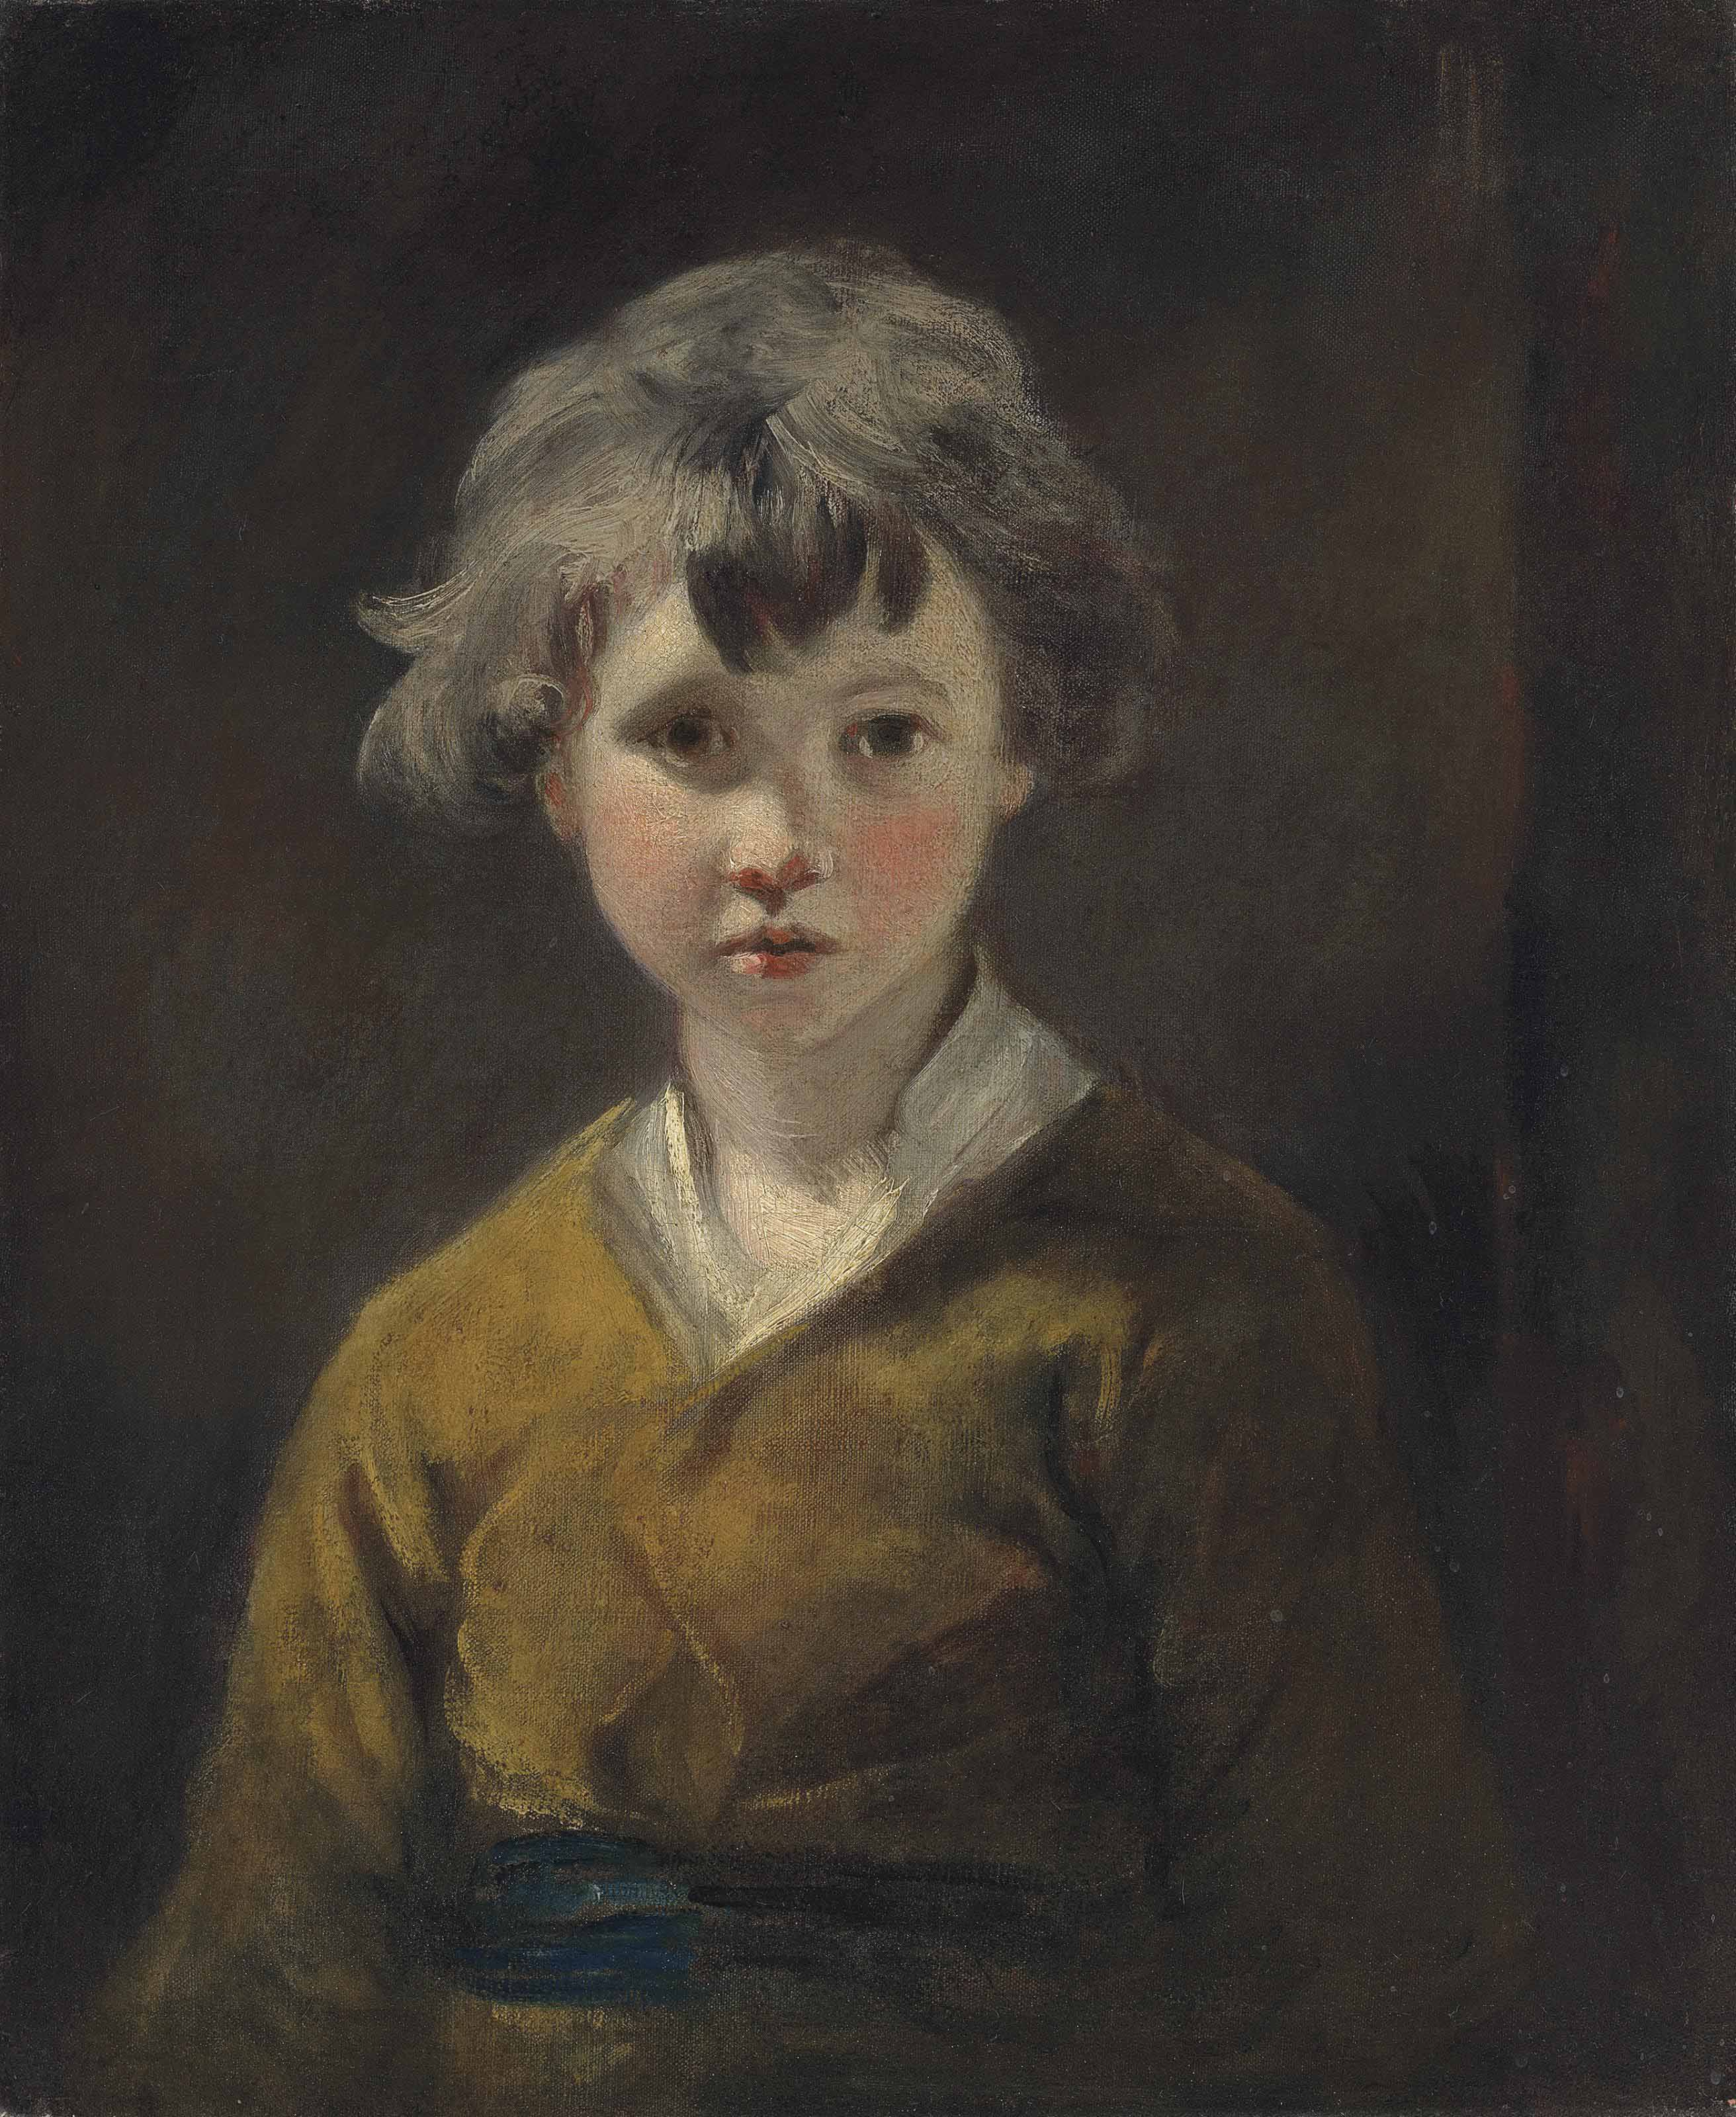 Edwin: Study of a young boy, half-length, in a brown coat, white shirt and blue sash